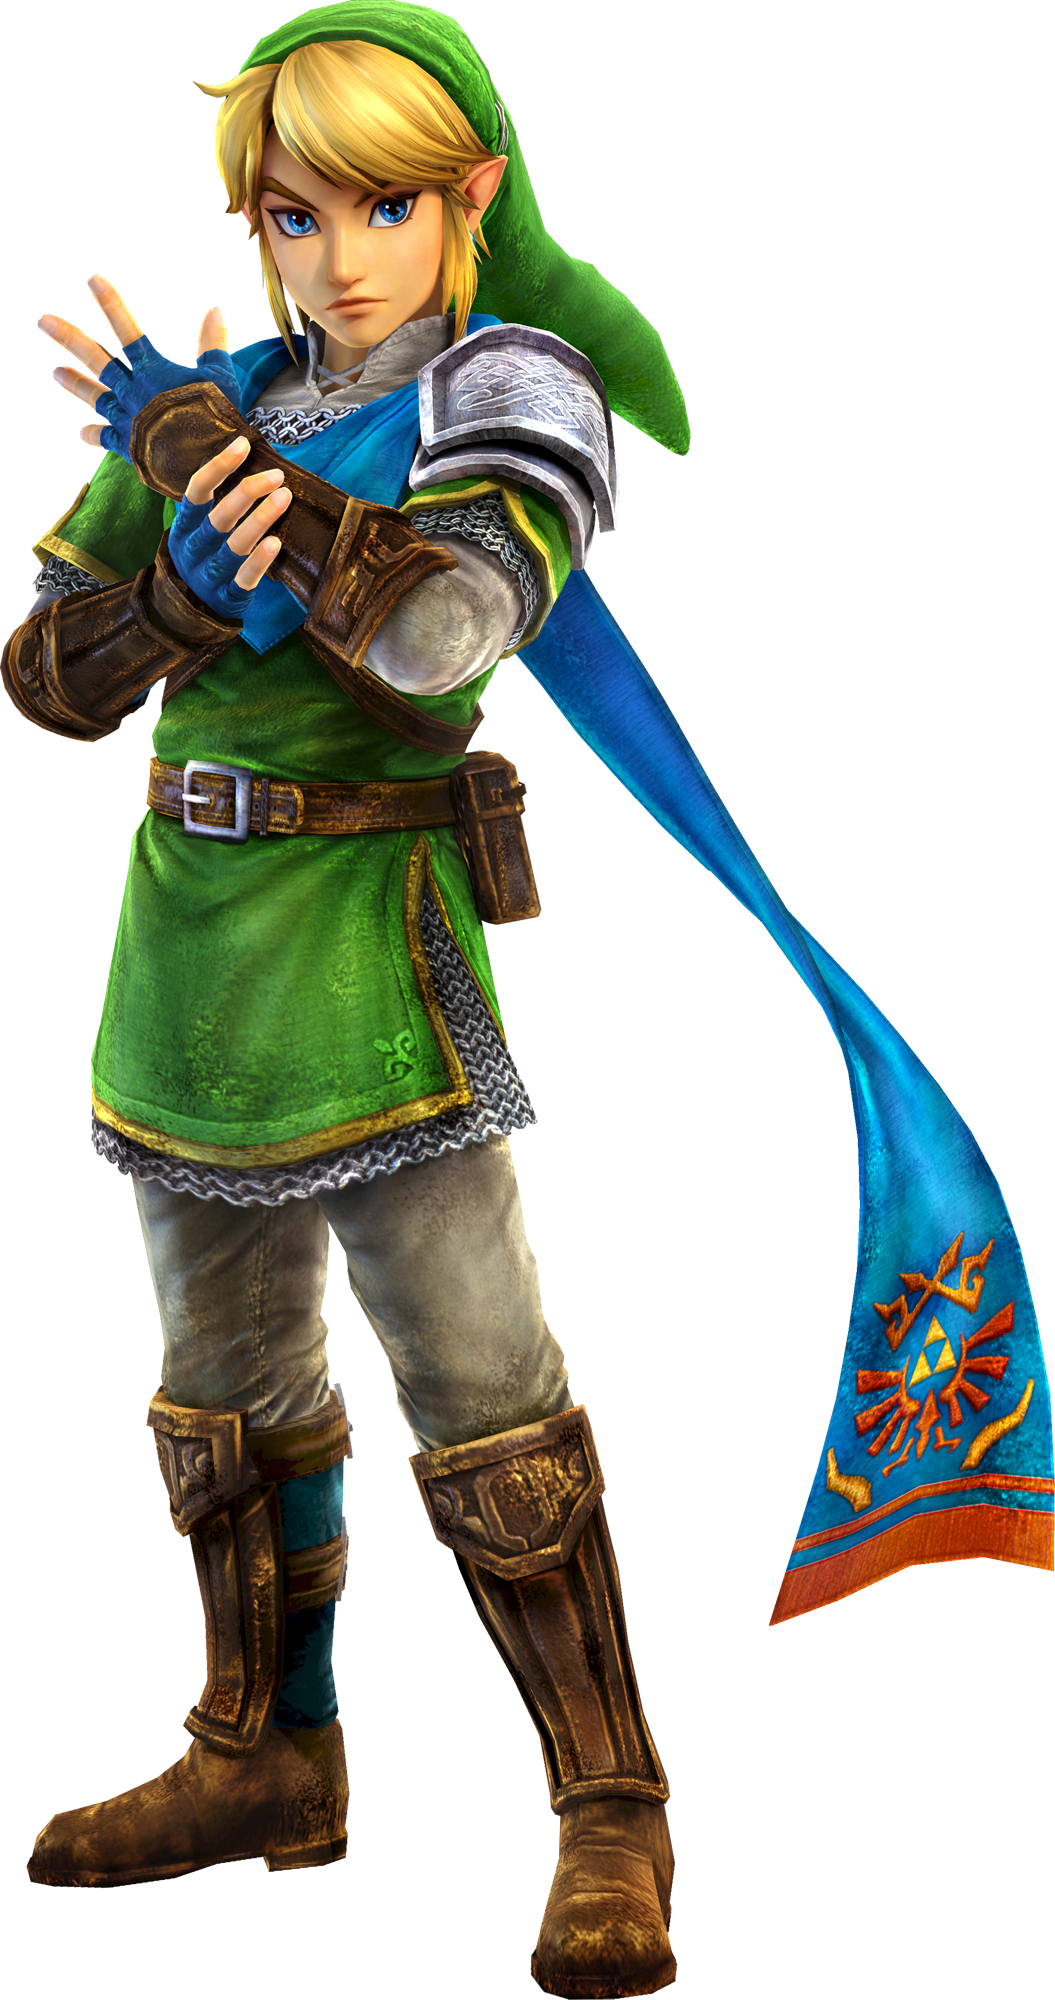 Link Hyrule Warriors Zeldapedia Fandom